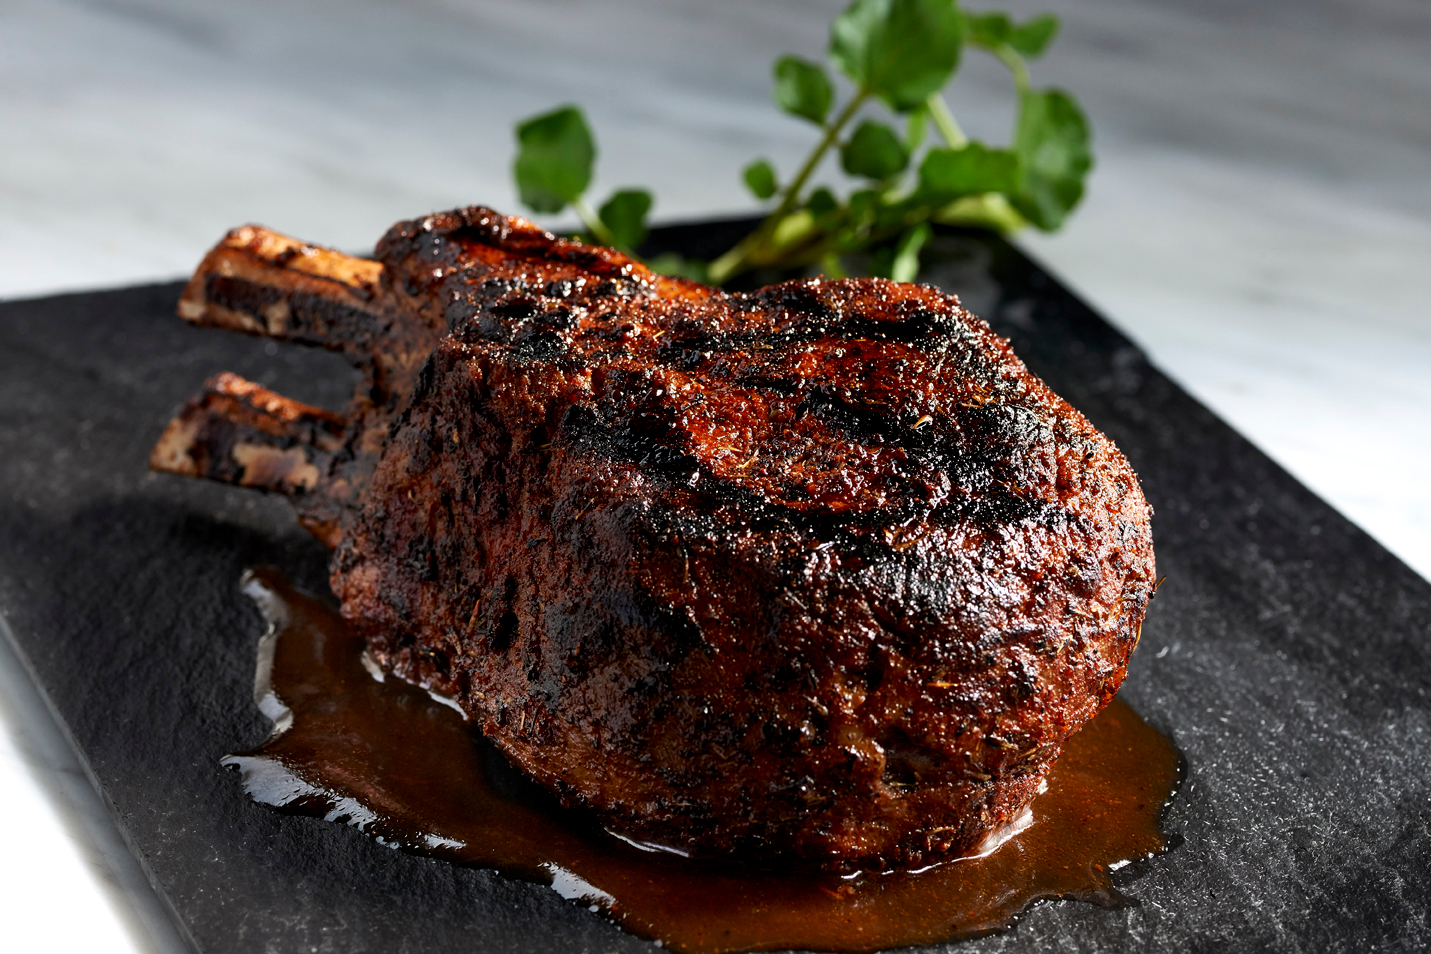 Morton's The Steakhouse 9525 W Bryn Mawr Ave, Rosemont